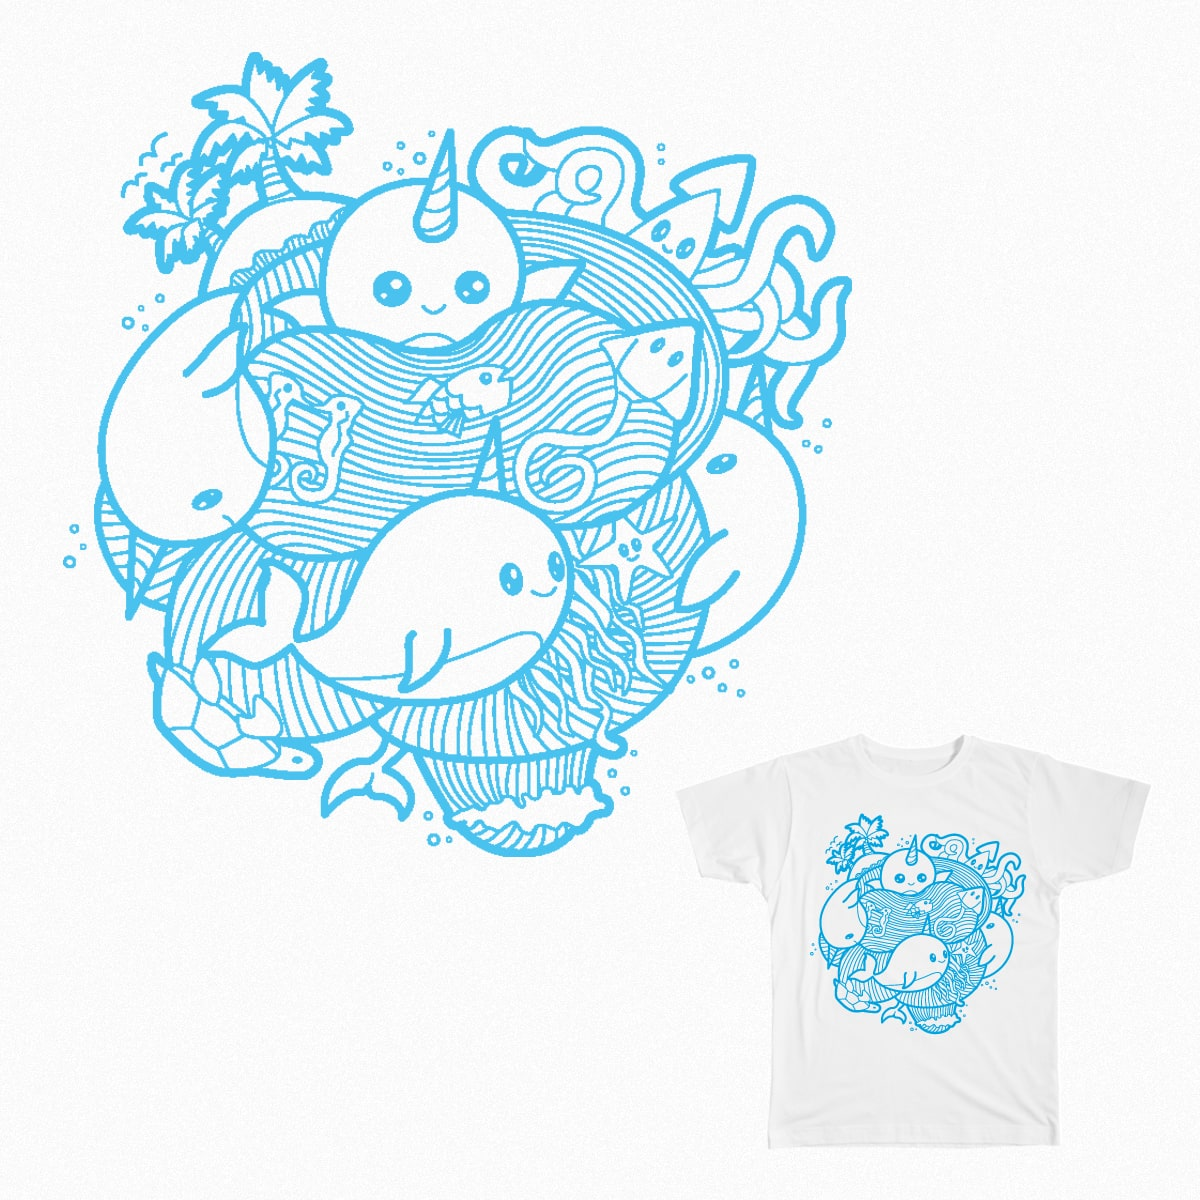 Narwhal Paradise by pcsterry on Threadless